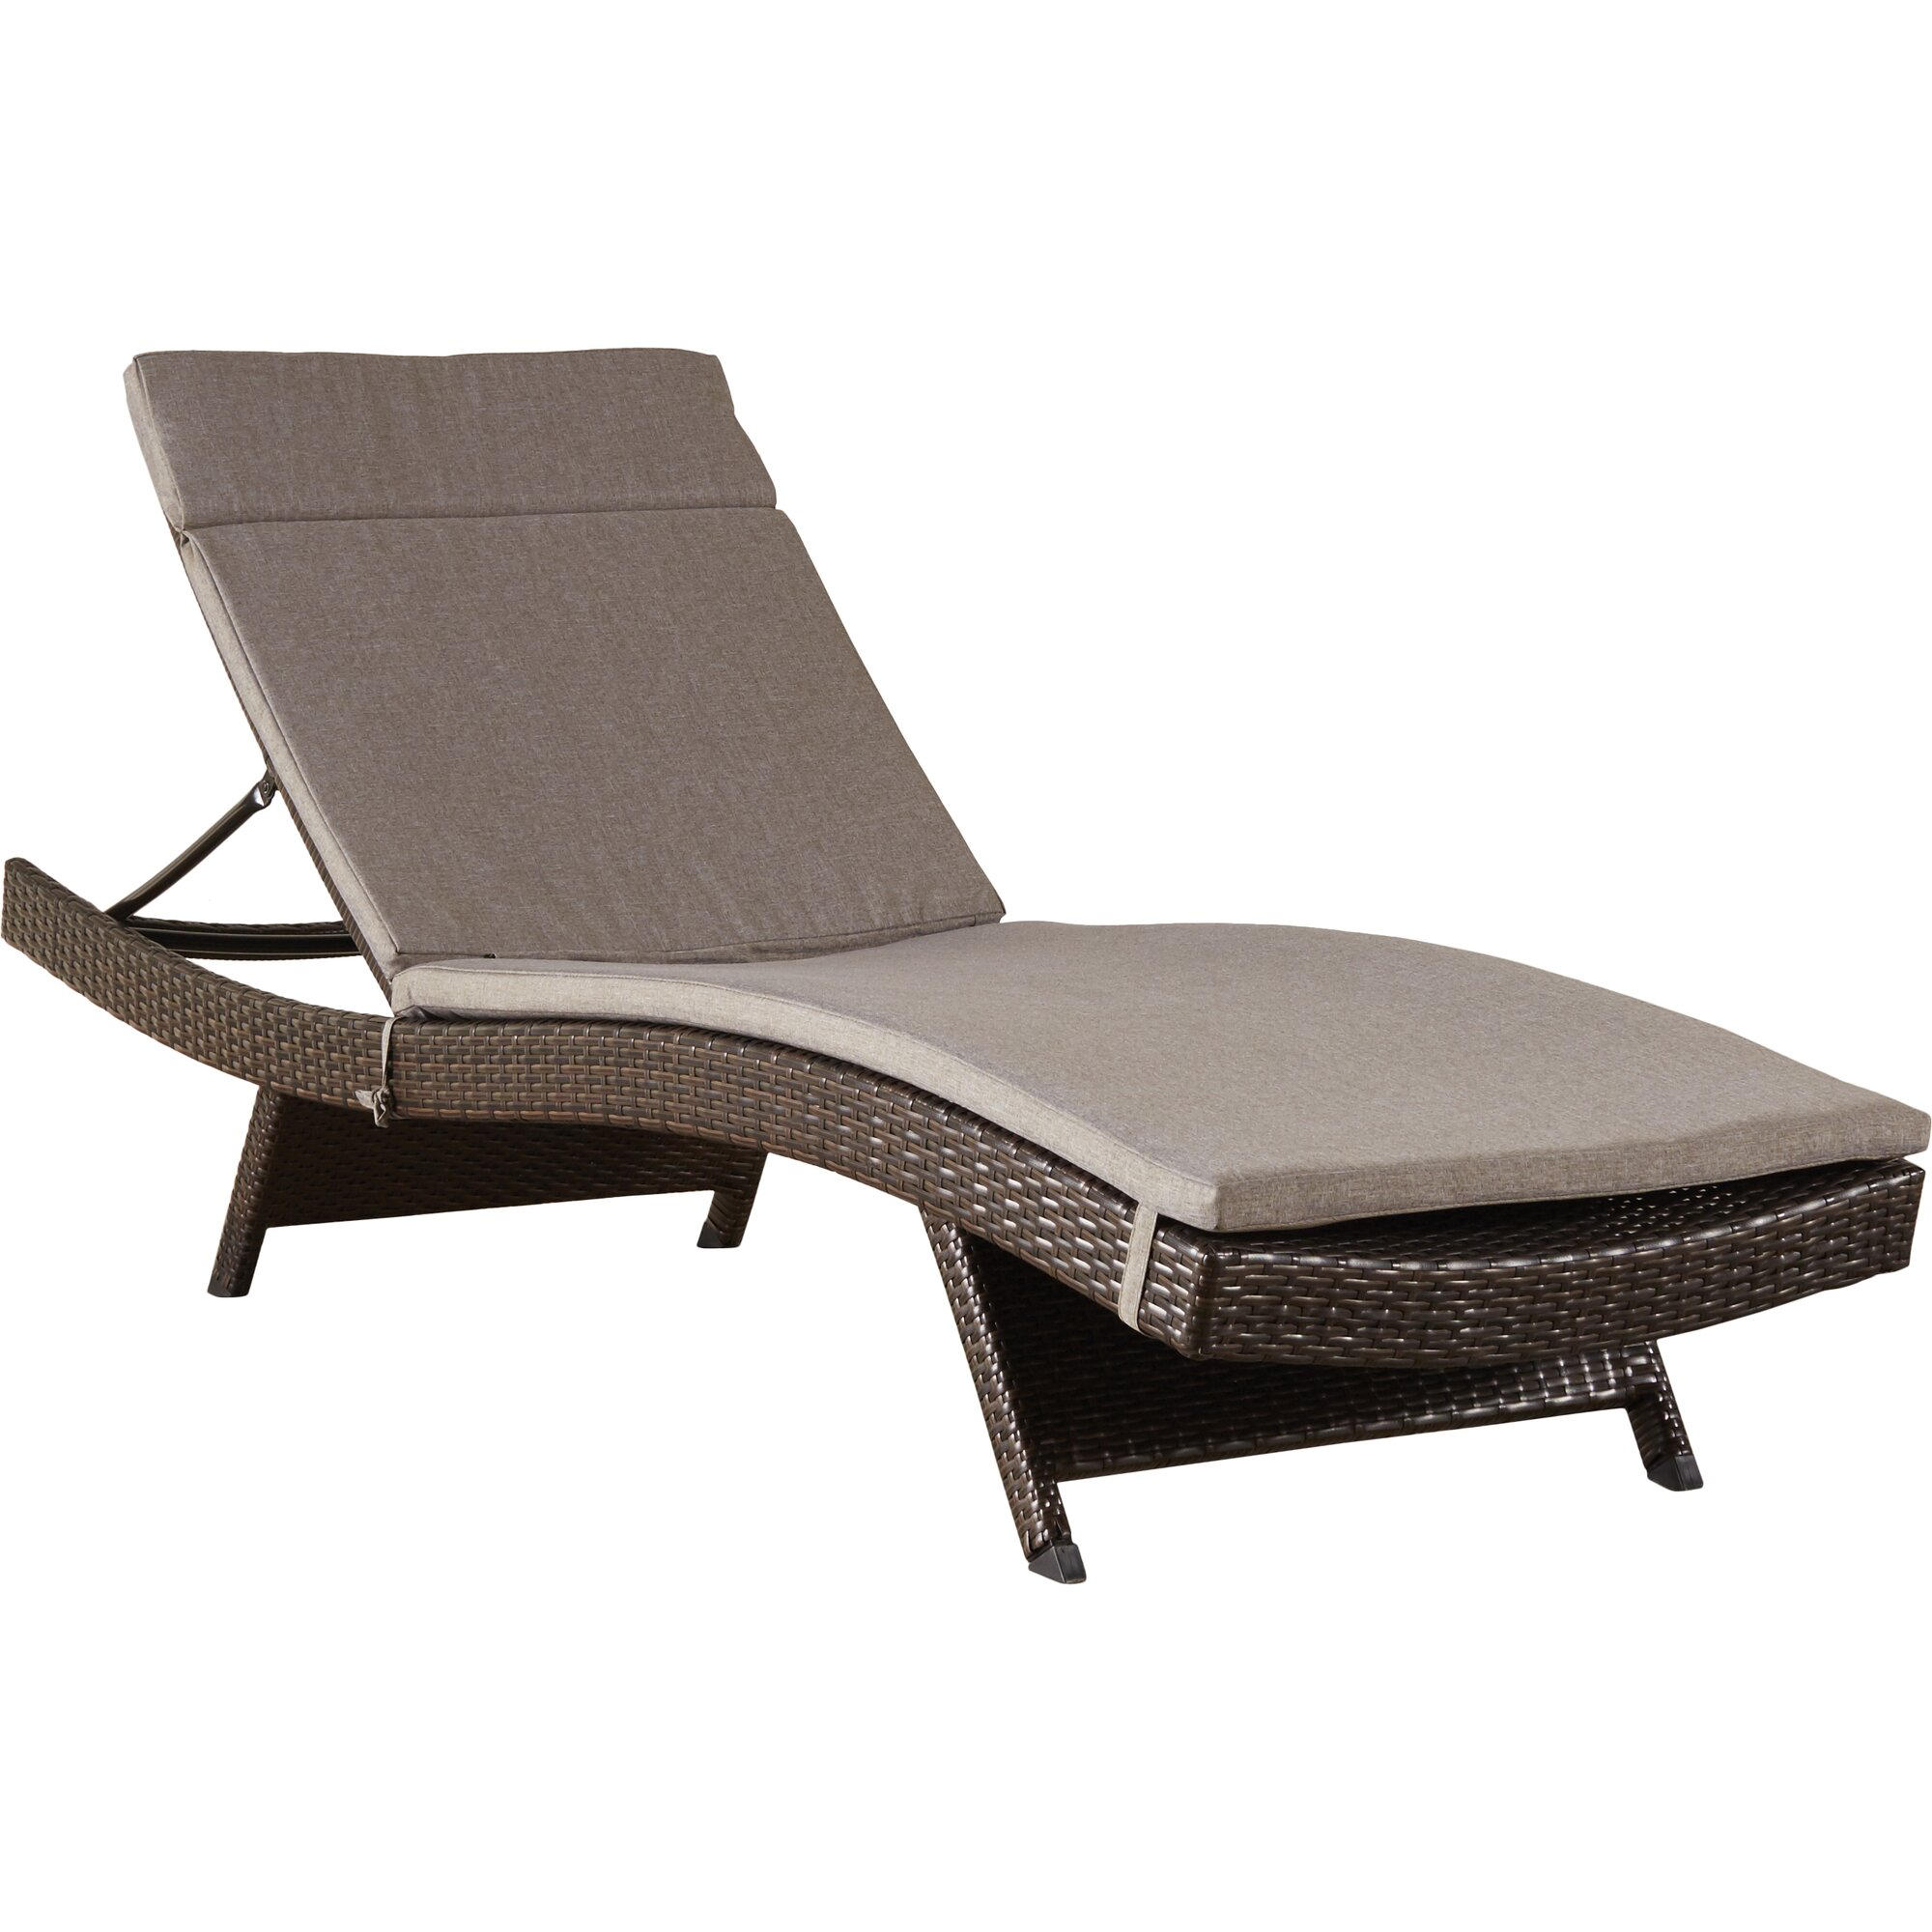 Ferrara chaise lounge with cushion reviews allmodern for Chaise longue cushion